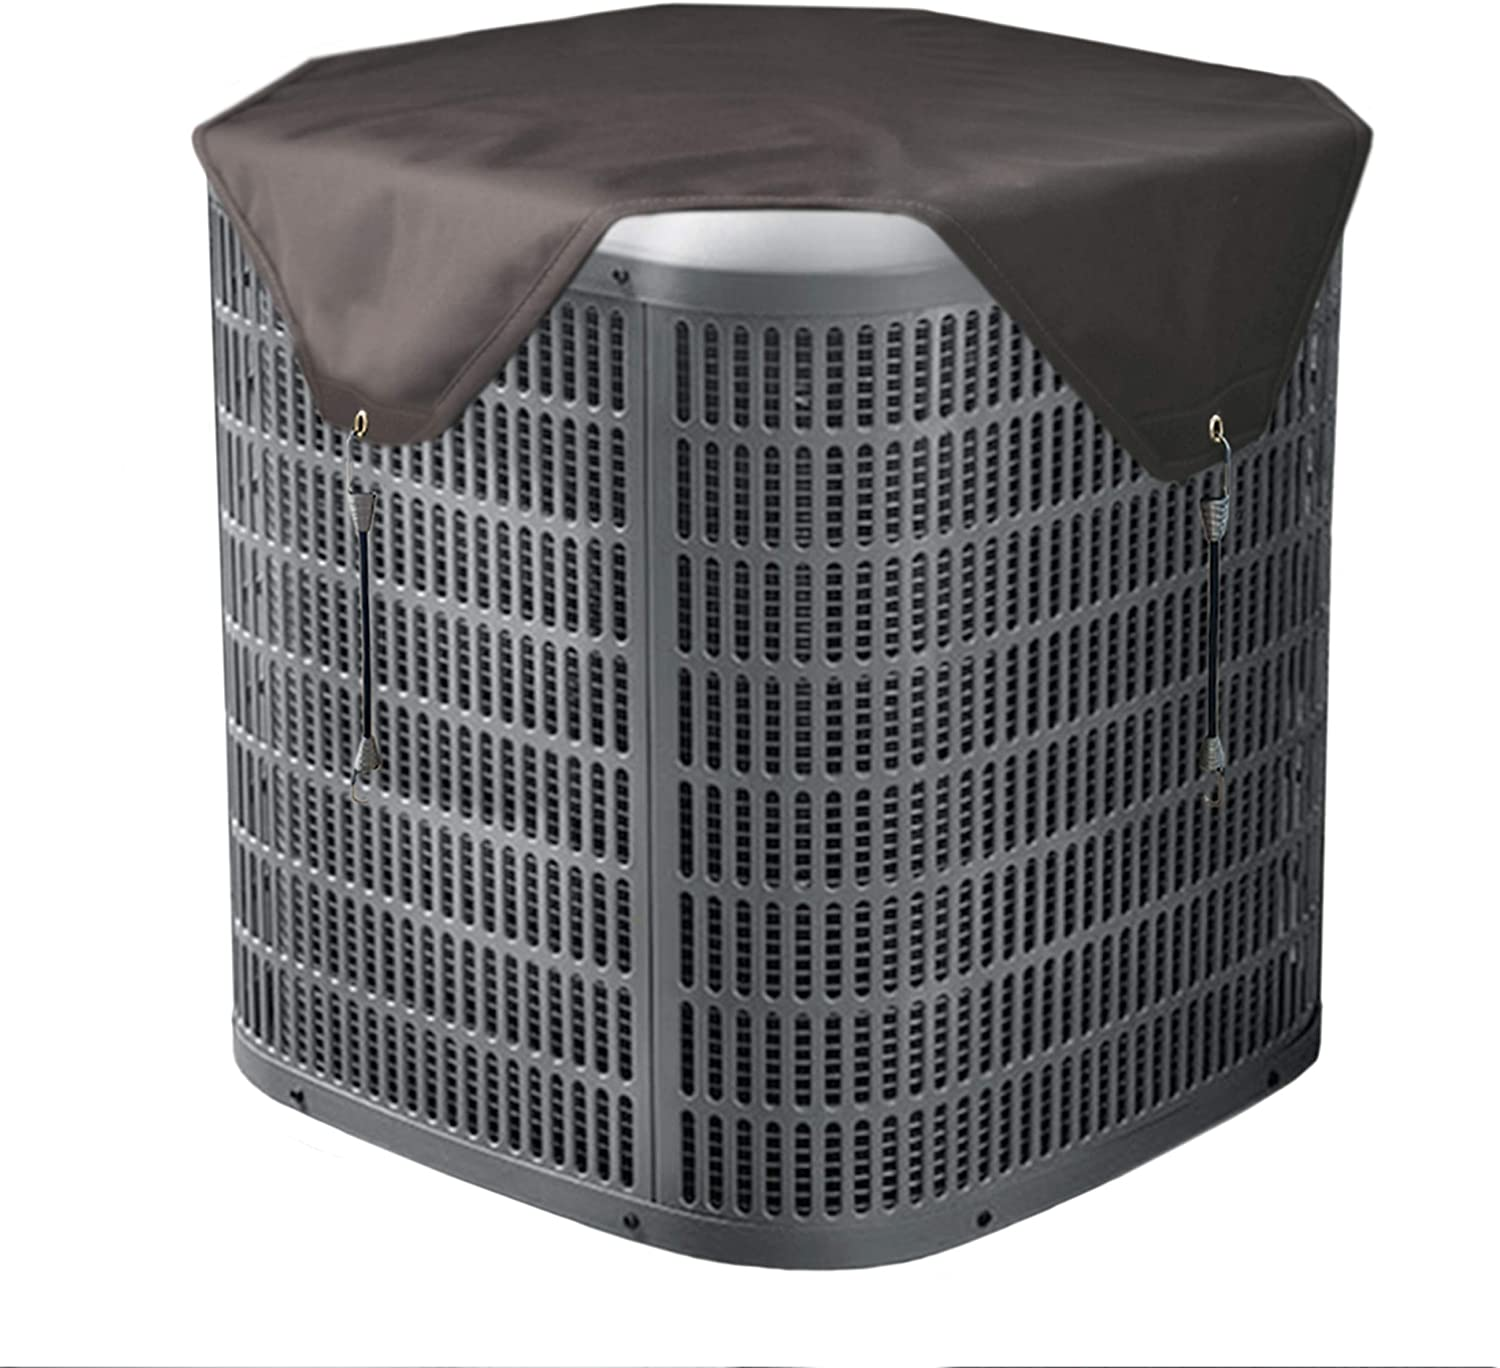 Foozet Winter Top Air Conditioner Cover for Outside AC Unit, 28 x 28 inches